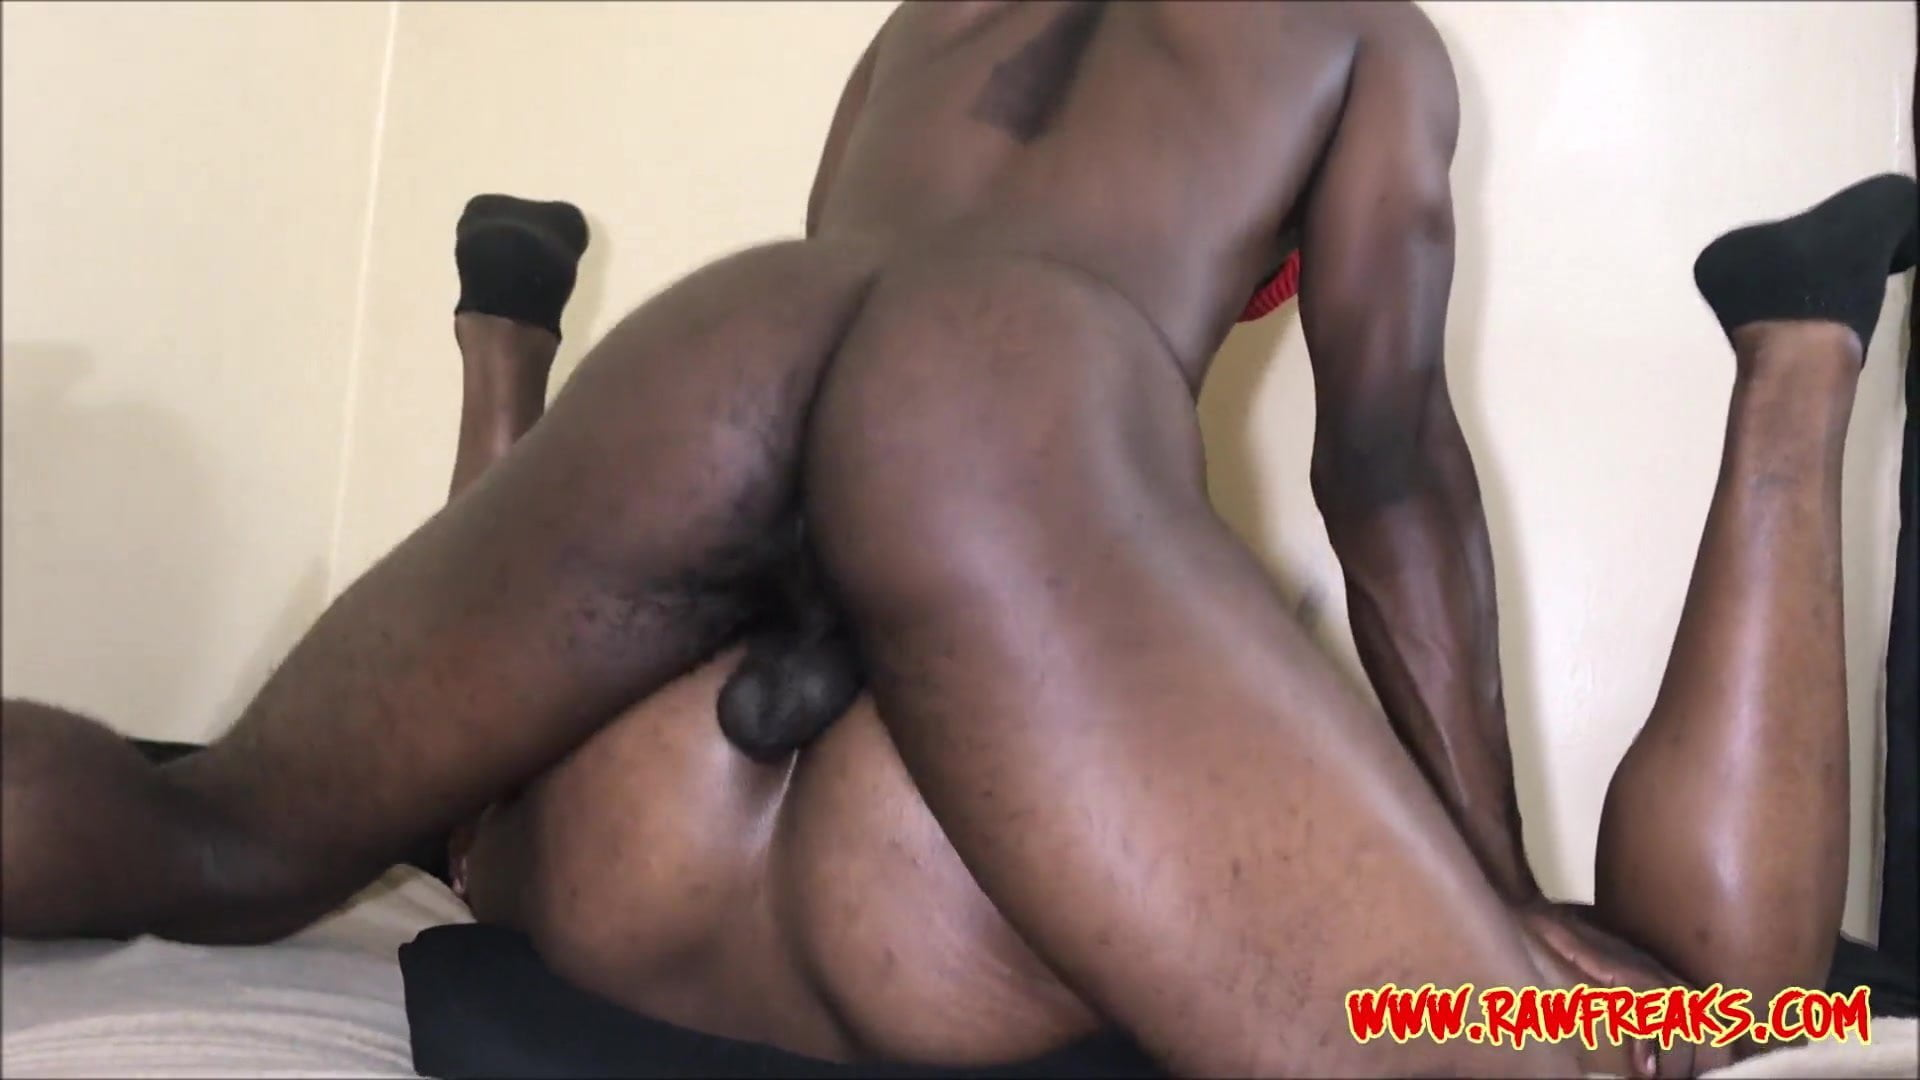 Dusty recommend Gay male hypnosis erotic